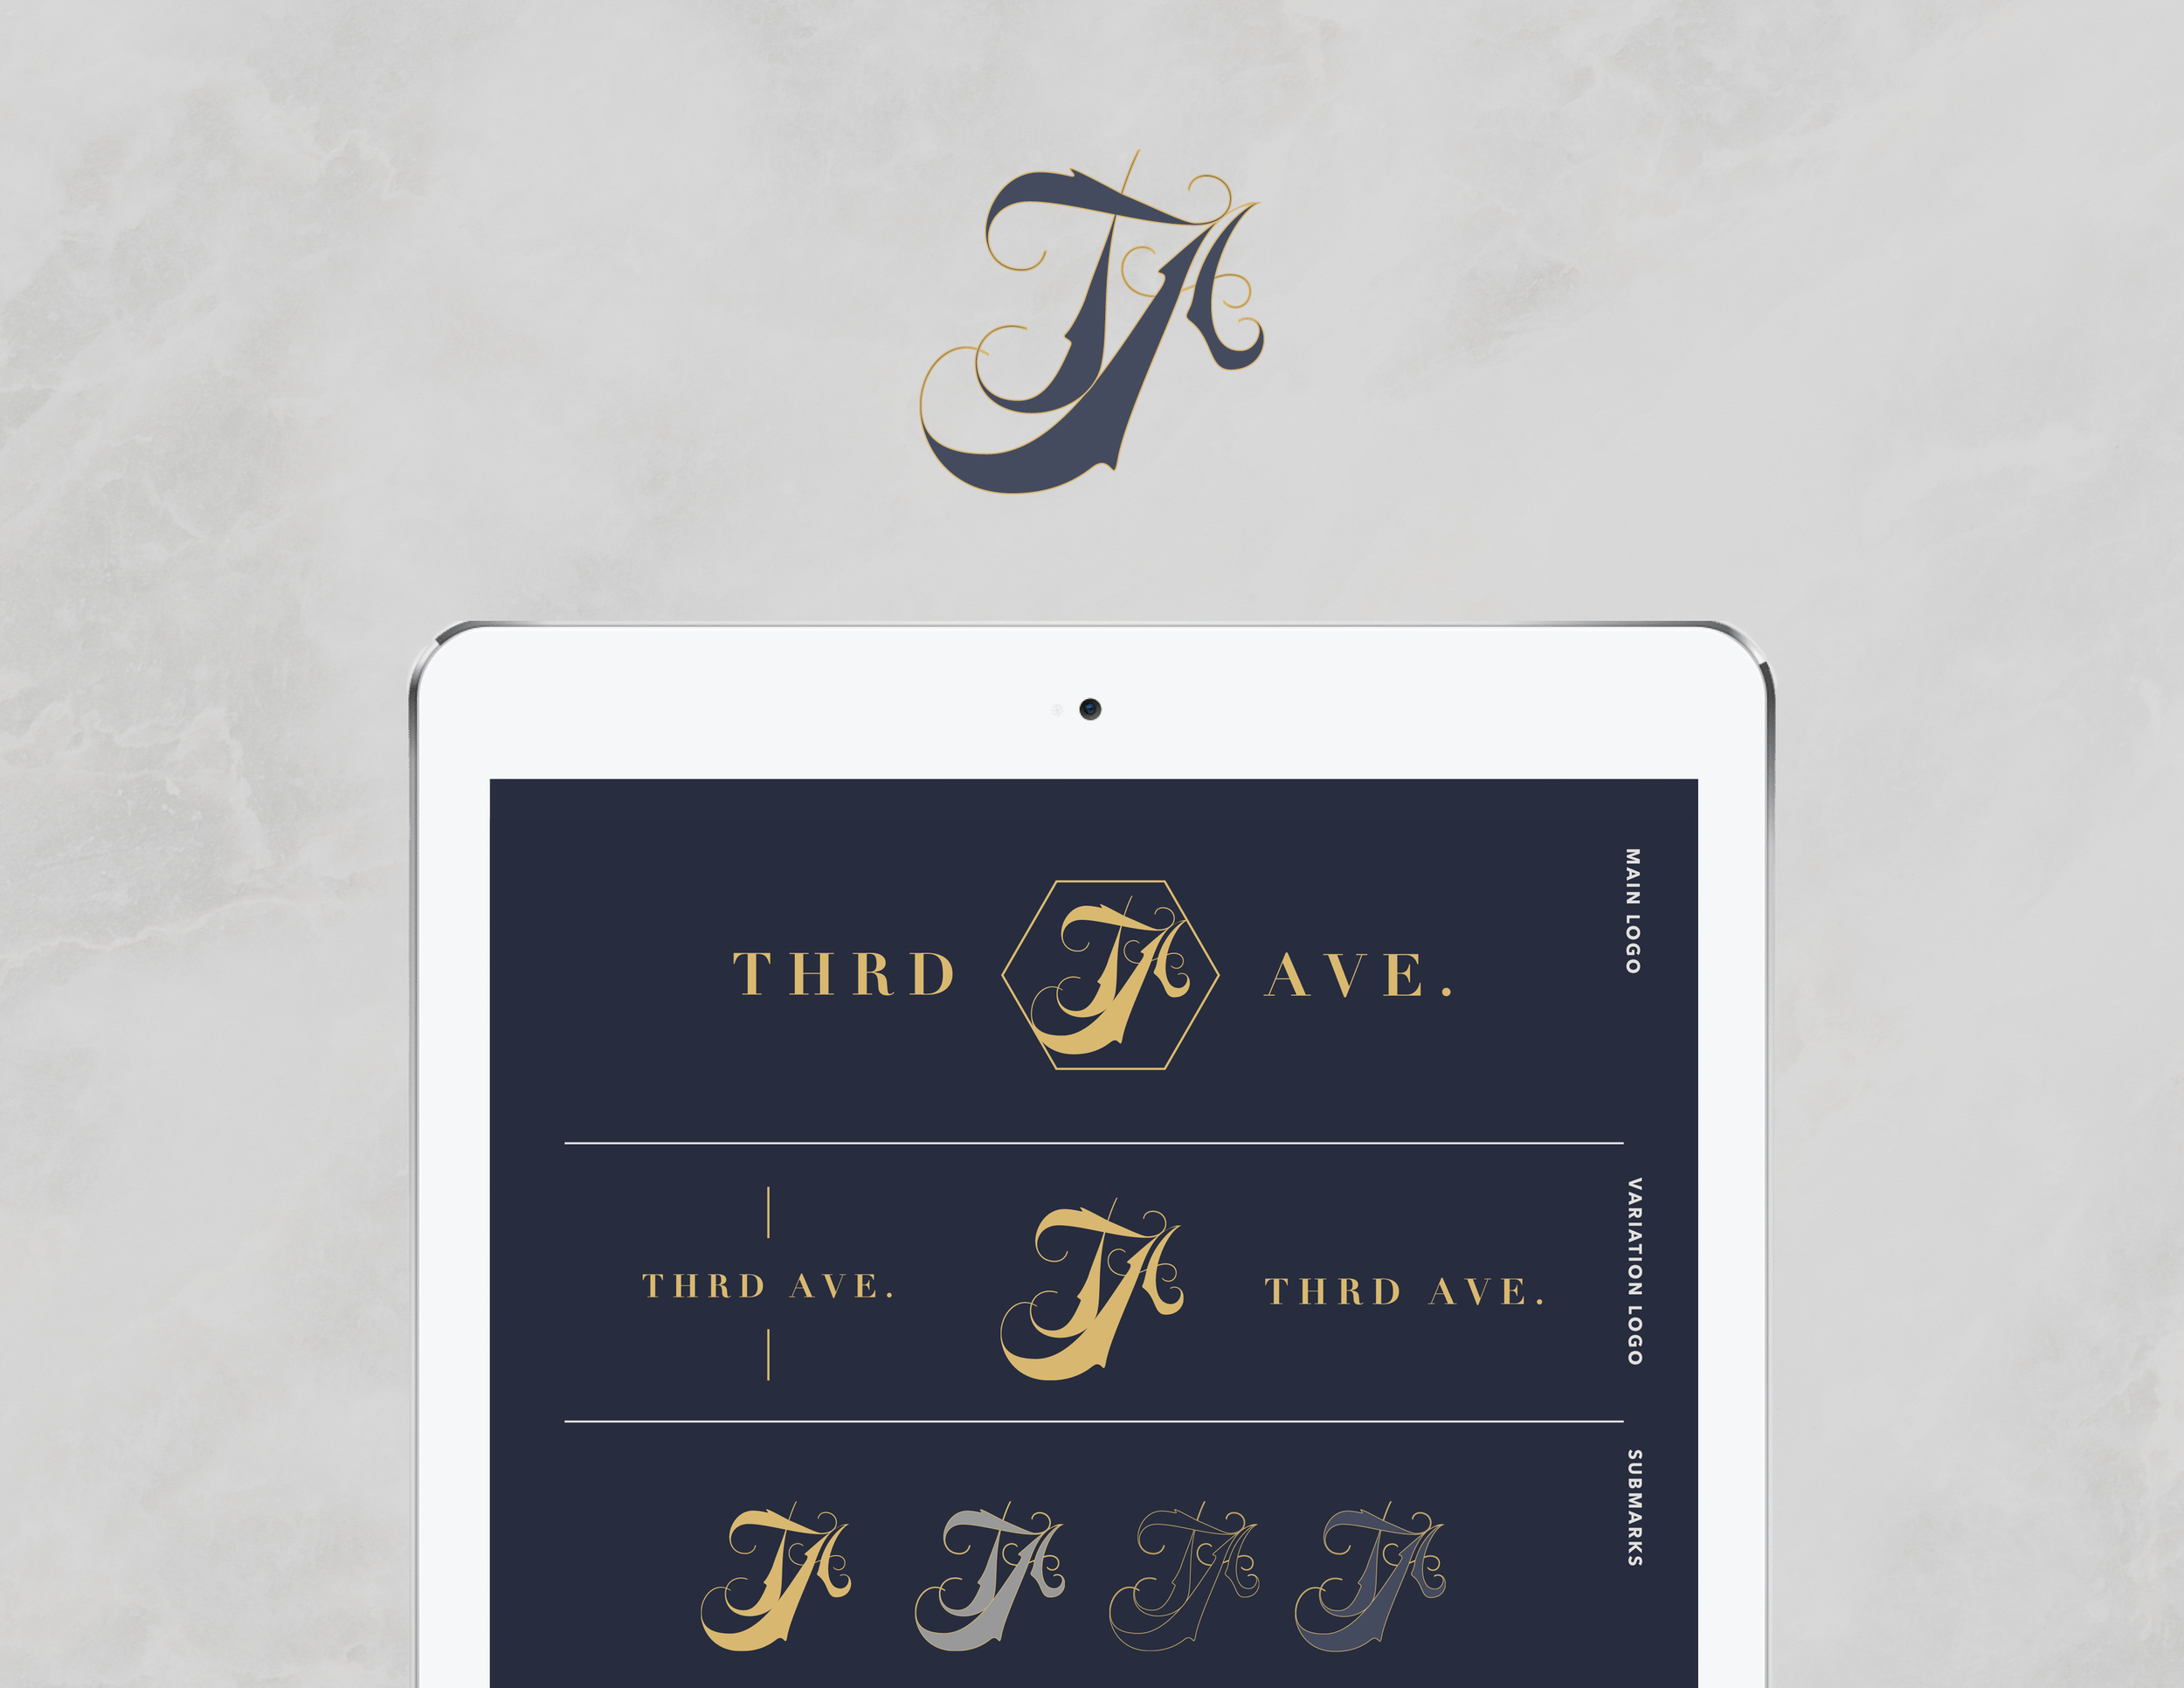 Third Ave. iPad Mockup - Kira Hyde Creative